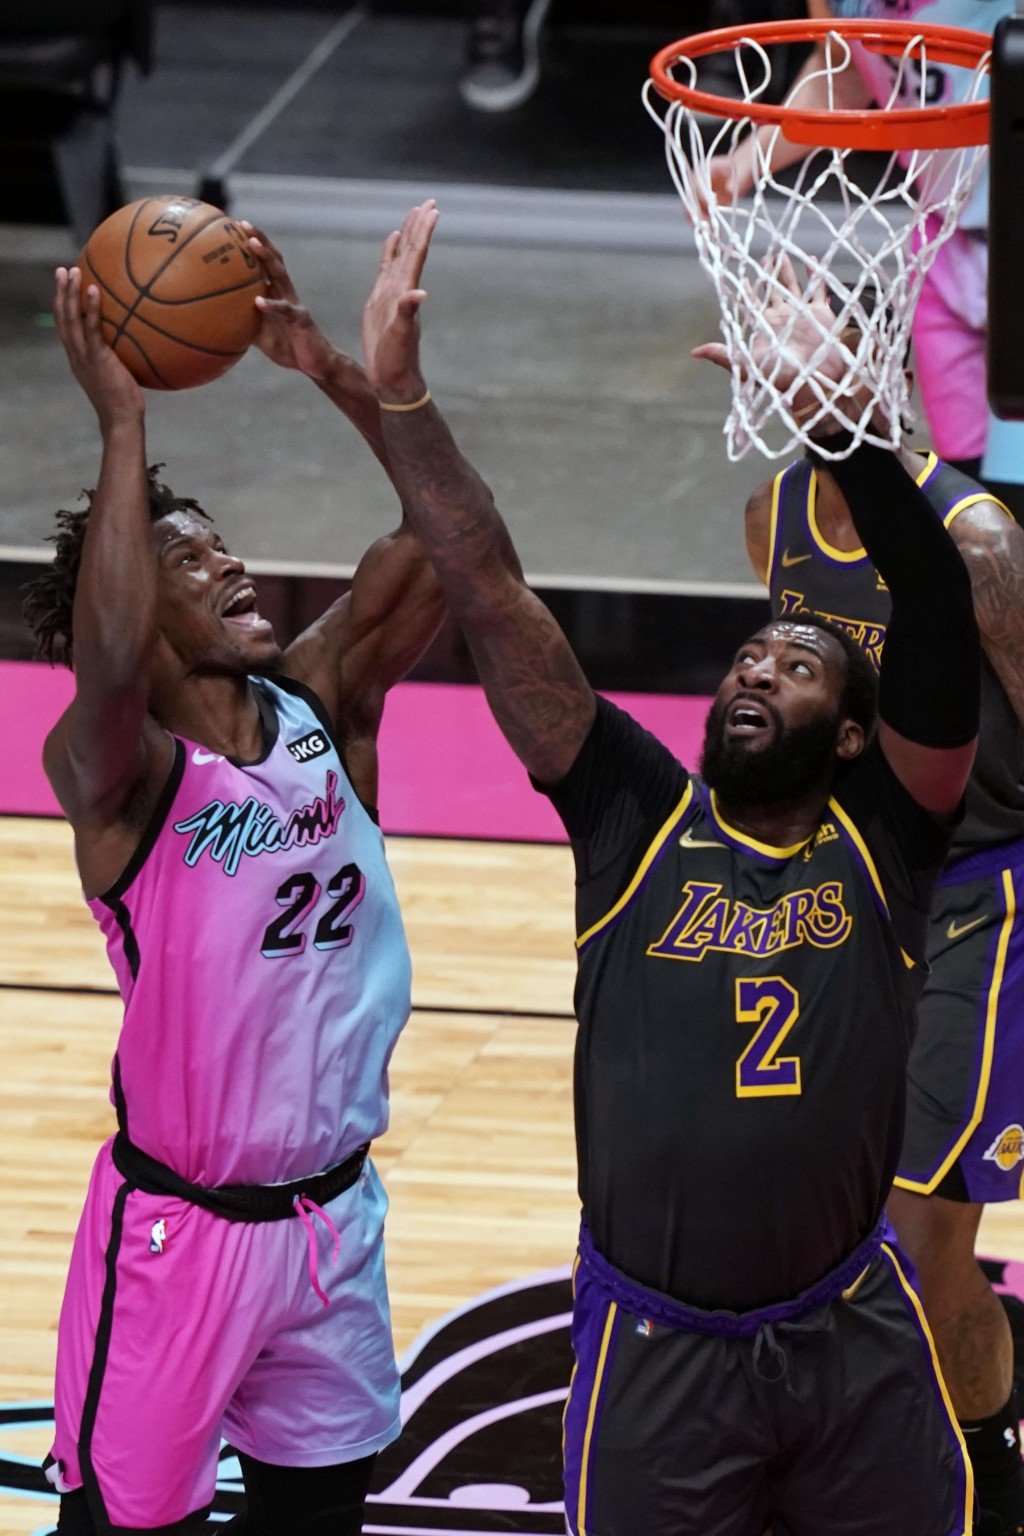 Miami Heat forward Jimmy Butler (22) drives to the basket as Los Angeles Lakers center Andre Drummond (2) defends, during the second half of an NBA ba...